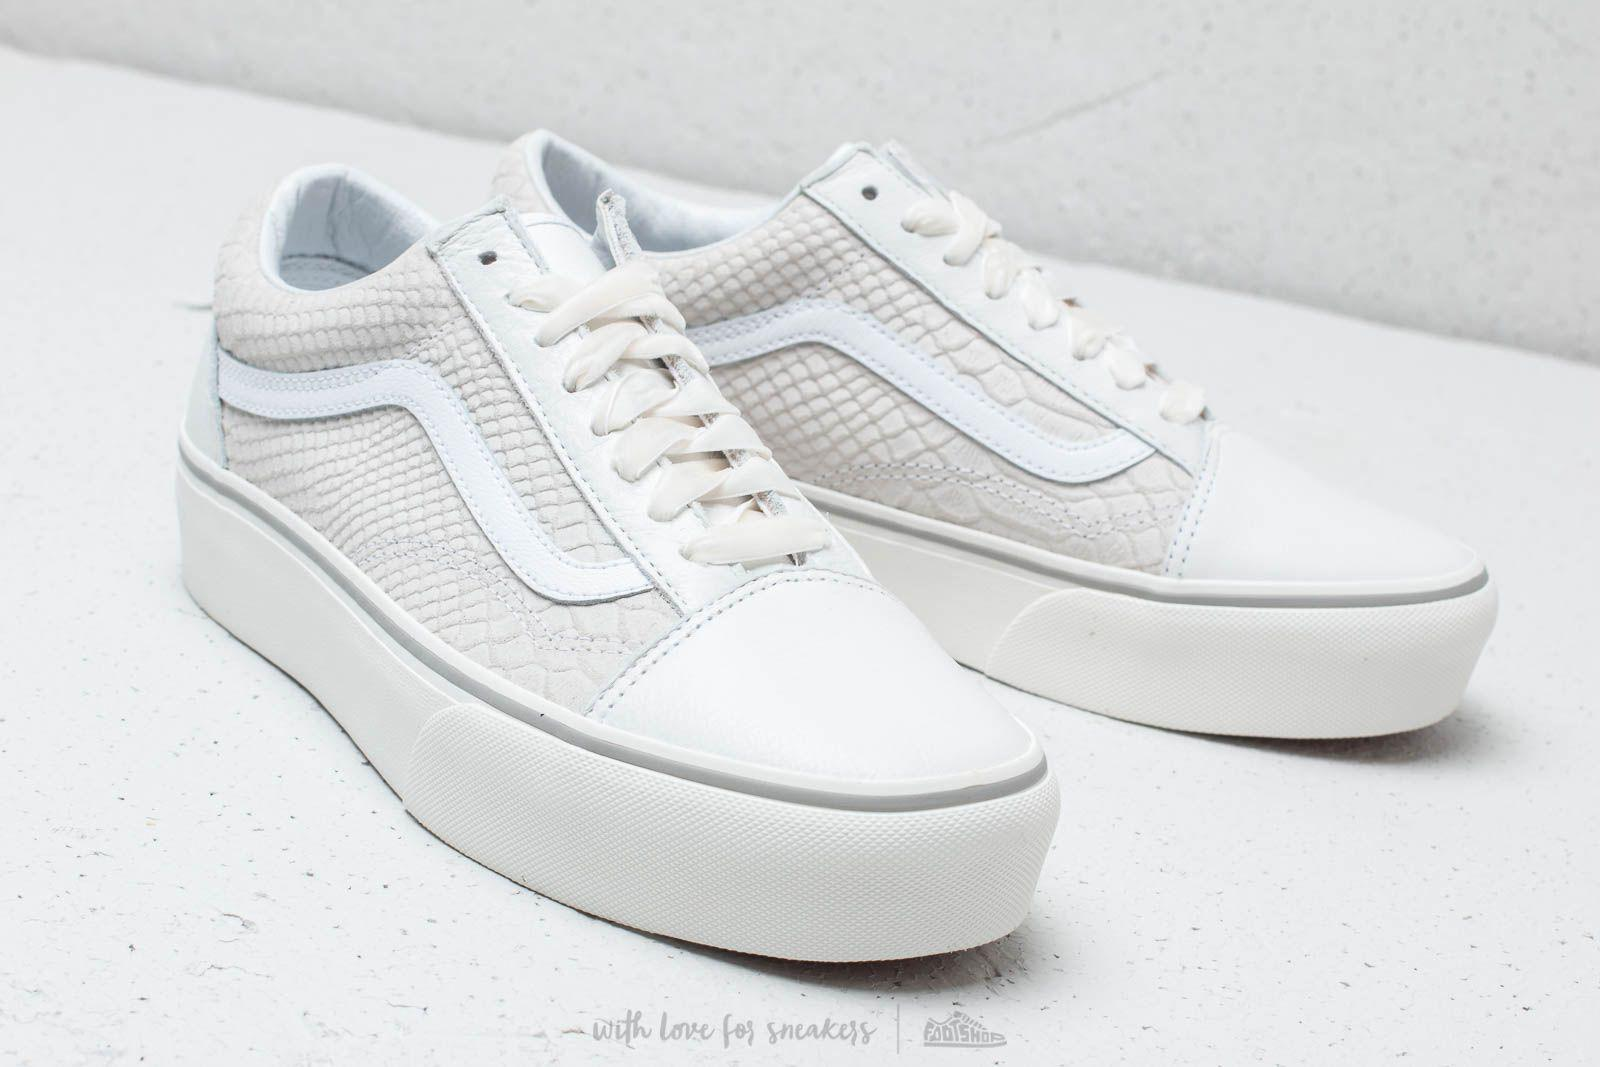 b8c21099725c27 Lyst - Vans Old Skool Platform (leather) Snake  White in White for Men